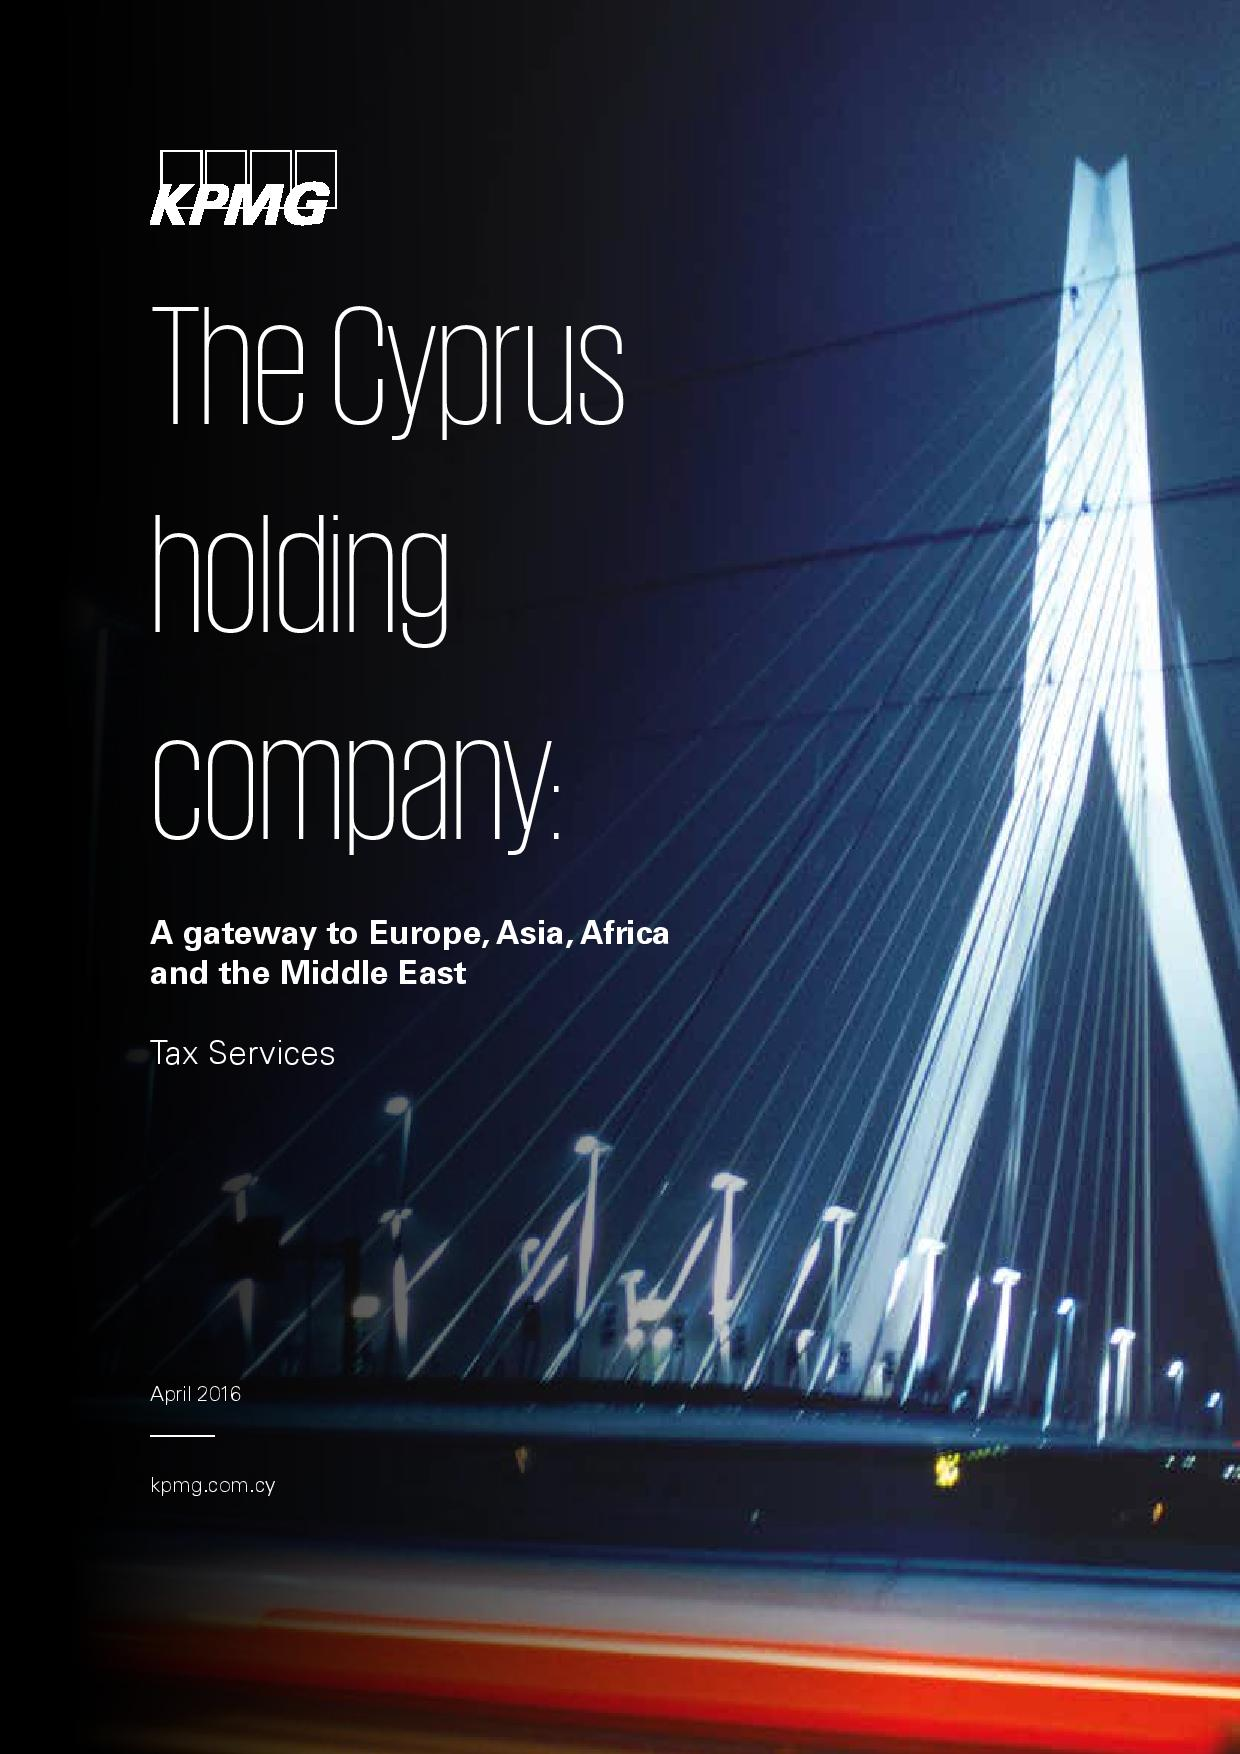 KPMG: The Cyprus Holding Company 2016